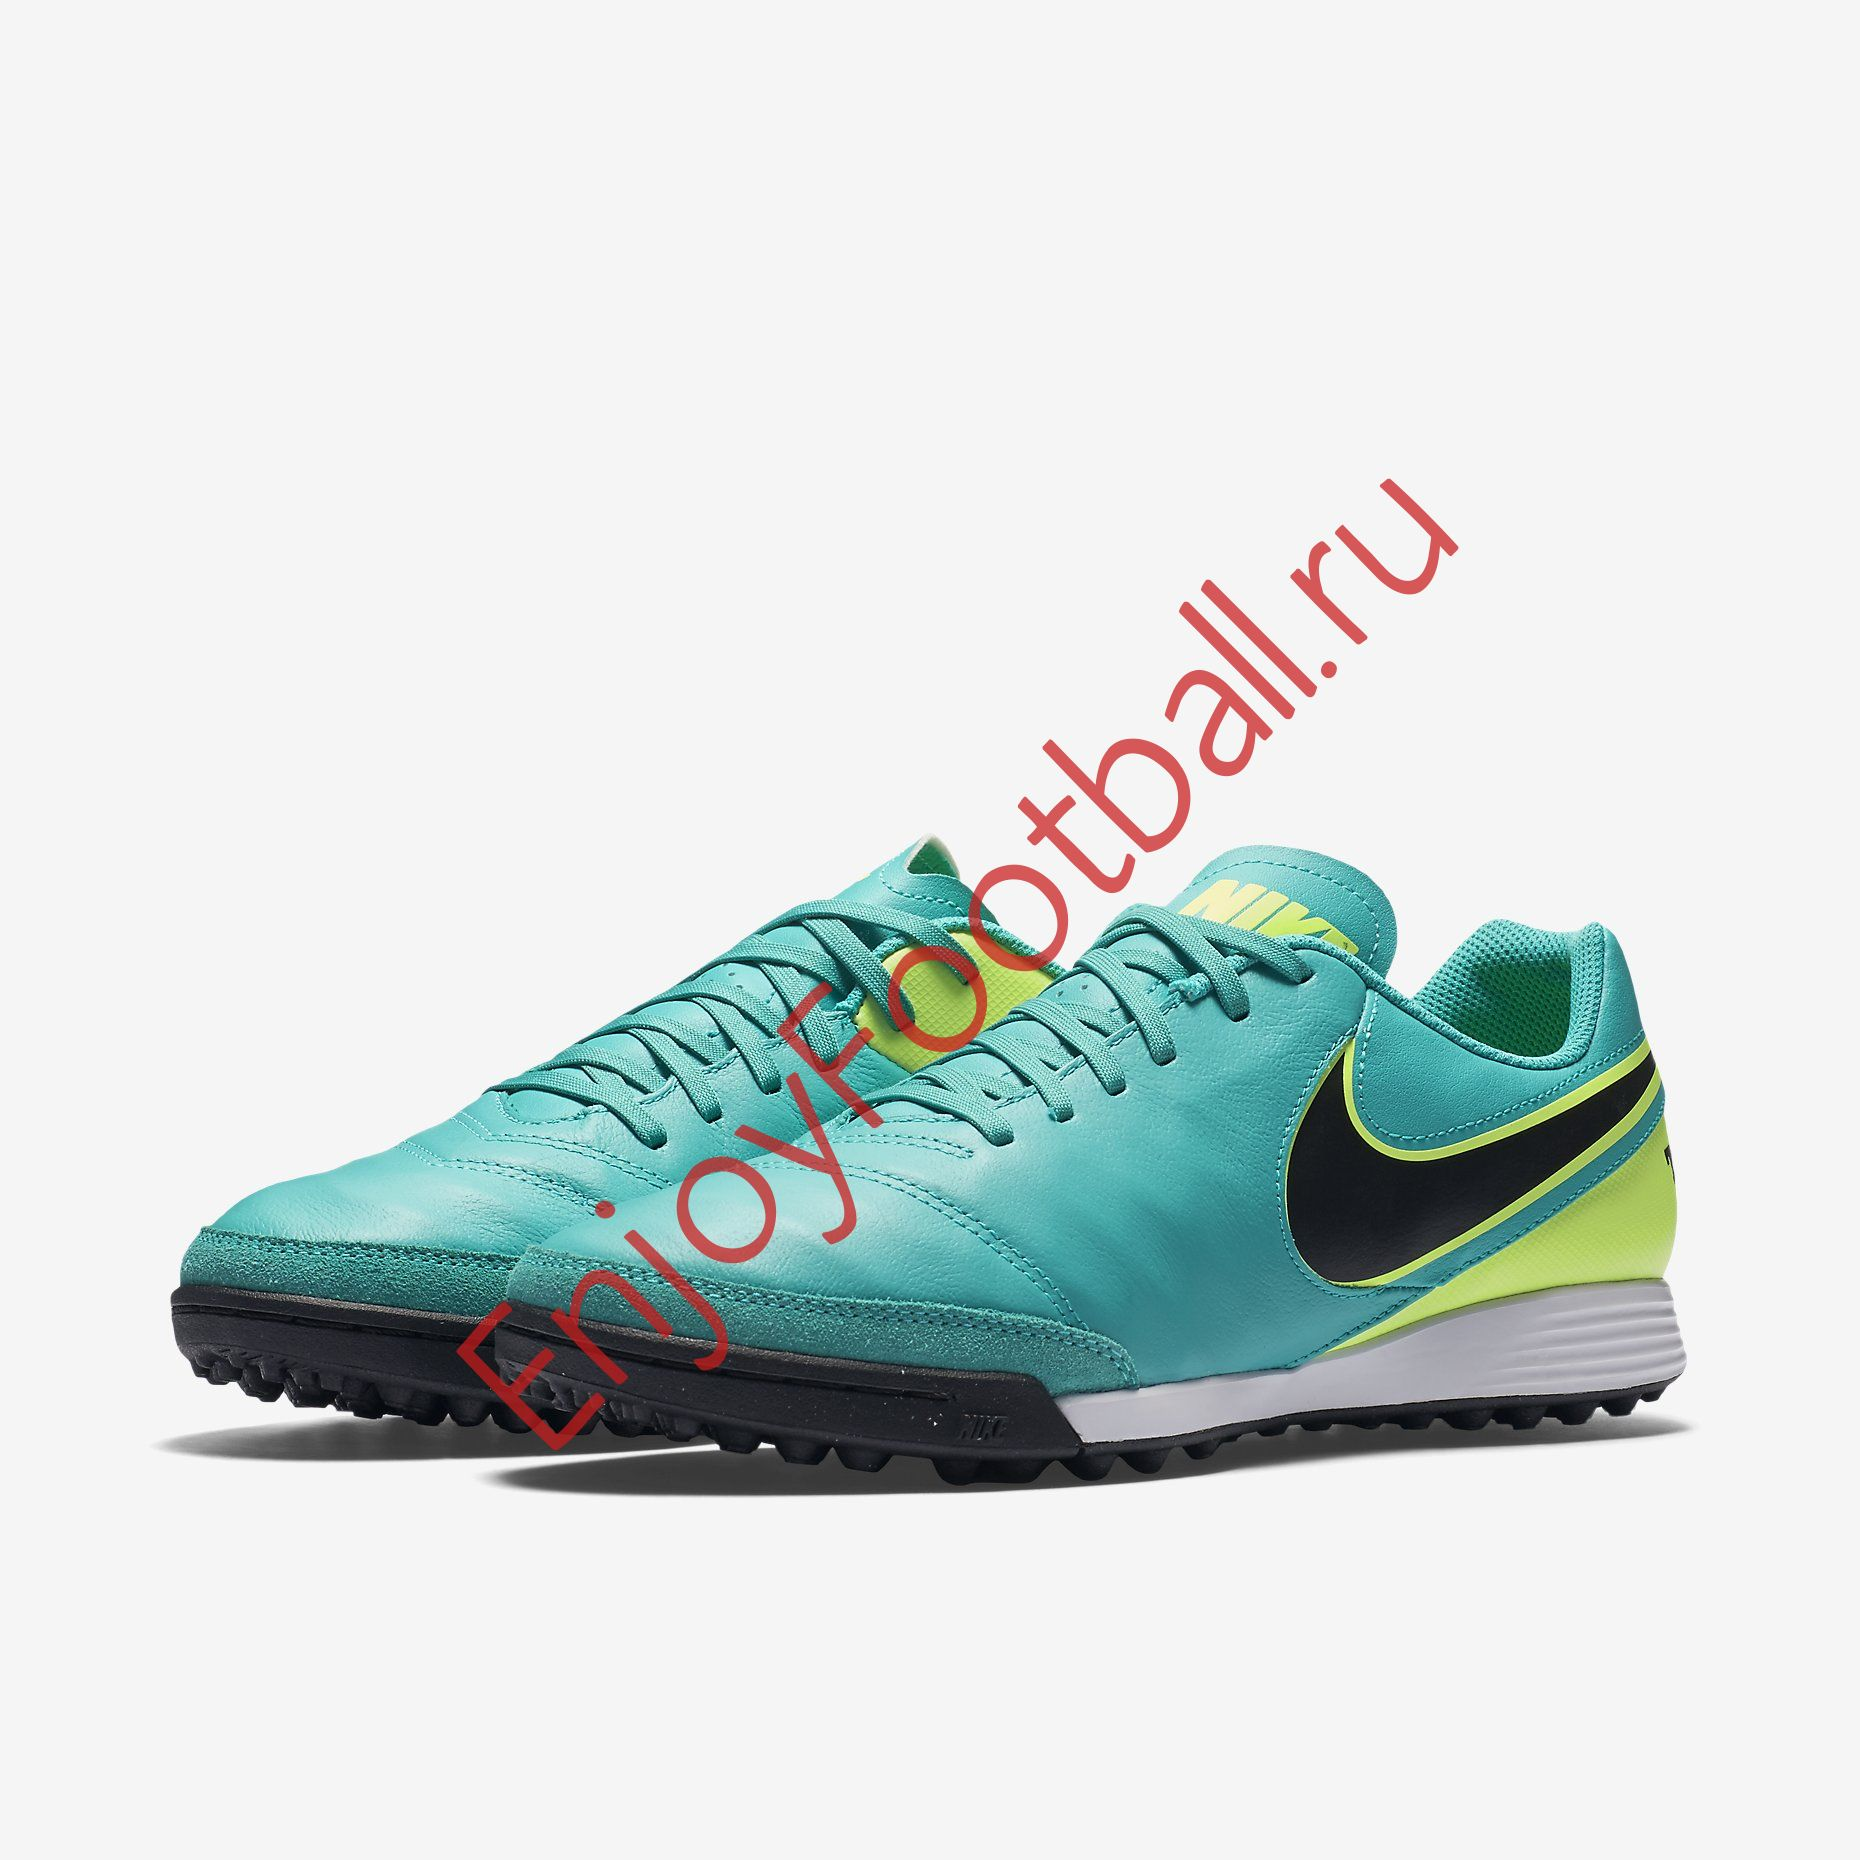 big sale 74331 ef46a Шиповки NIKE TIEMPO GENIO II LEATHER TF 819216-307